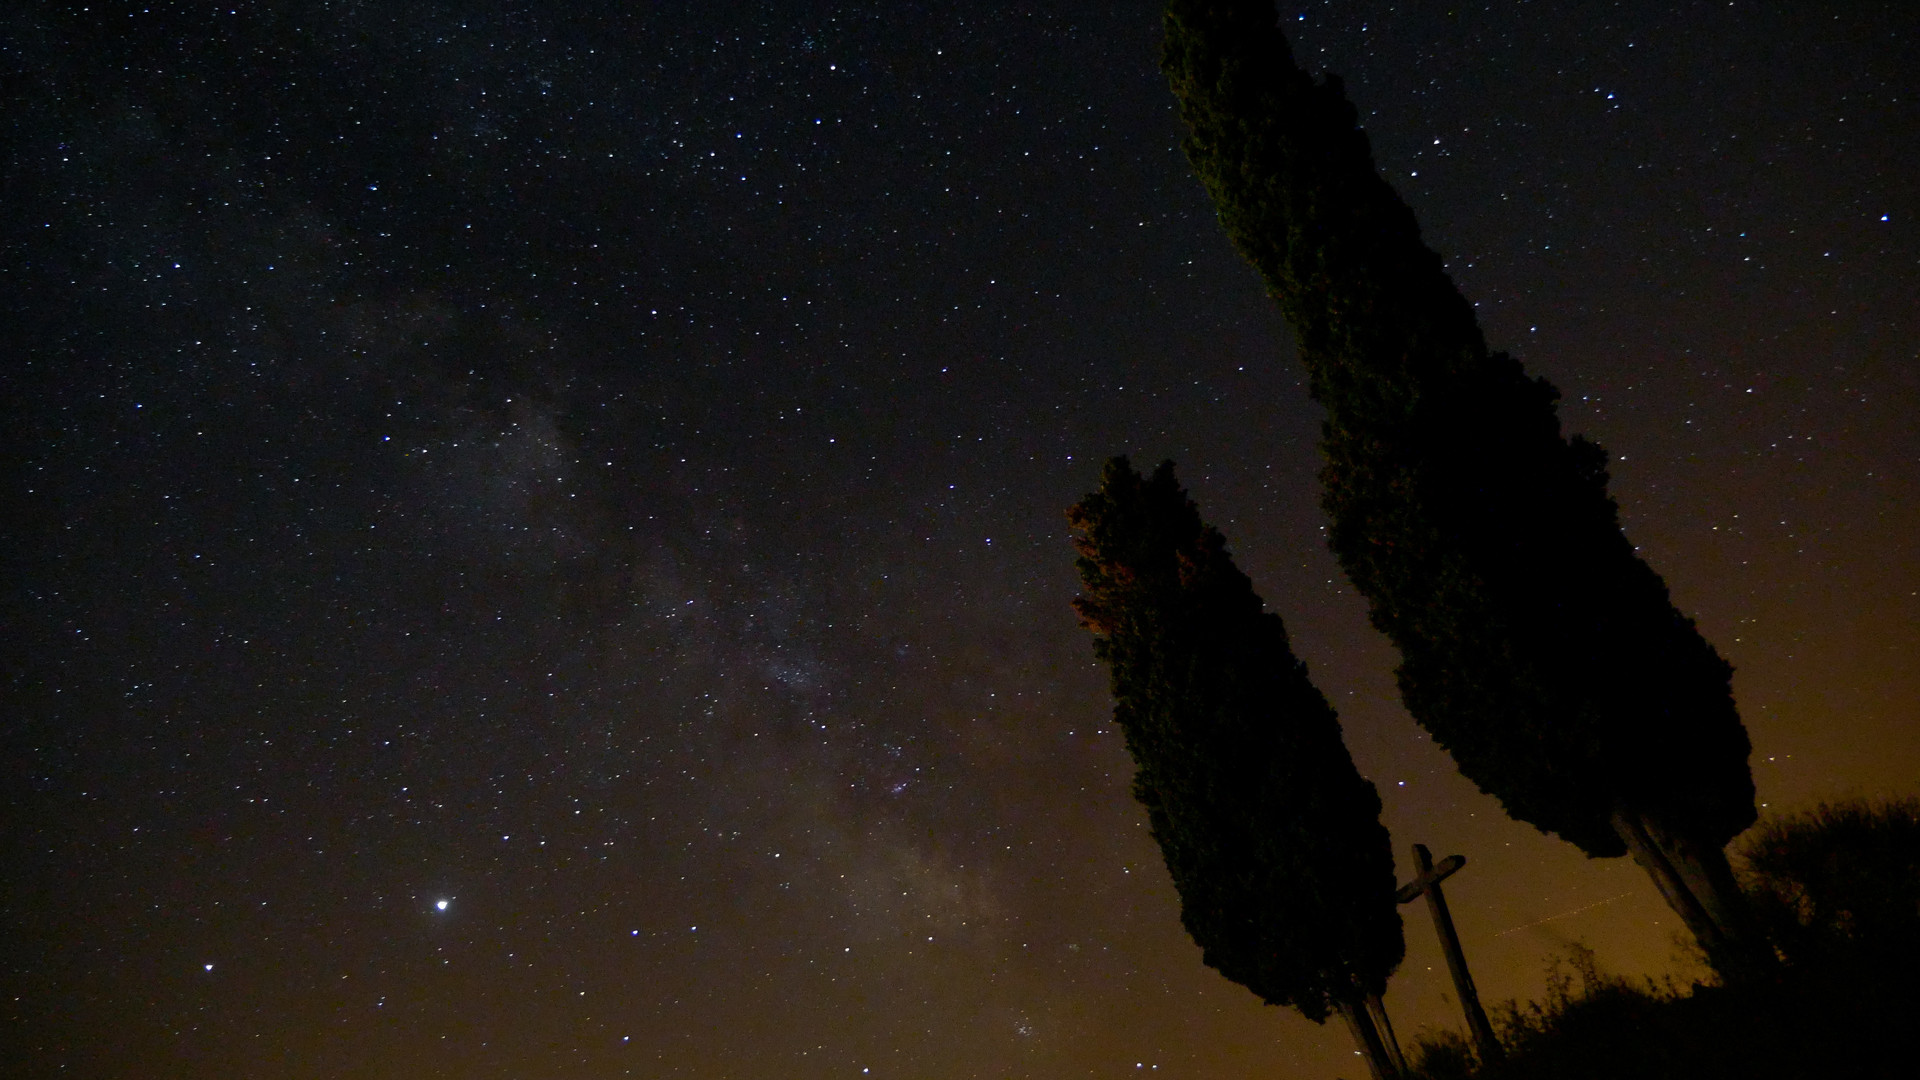 Milky Way over Les Causses, Aveyron